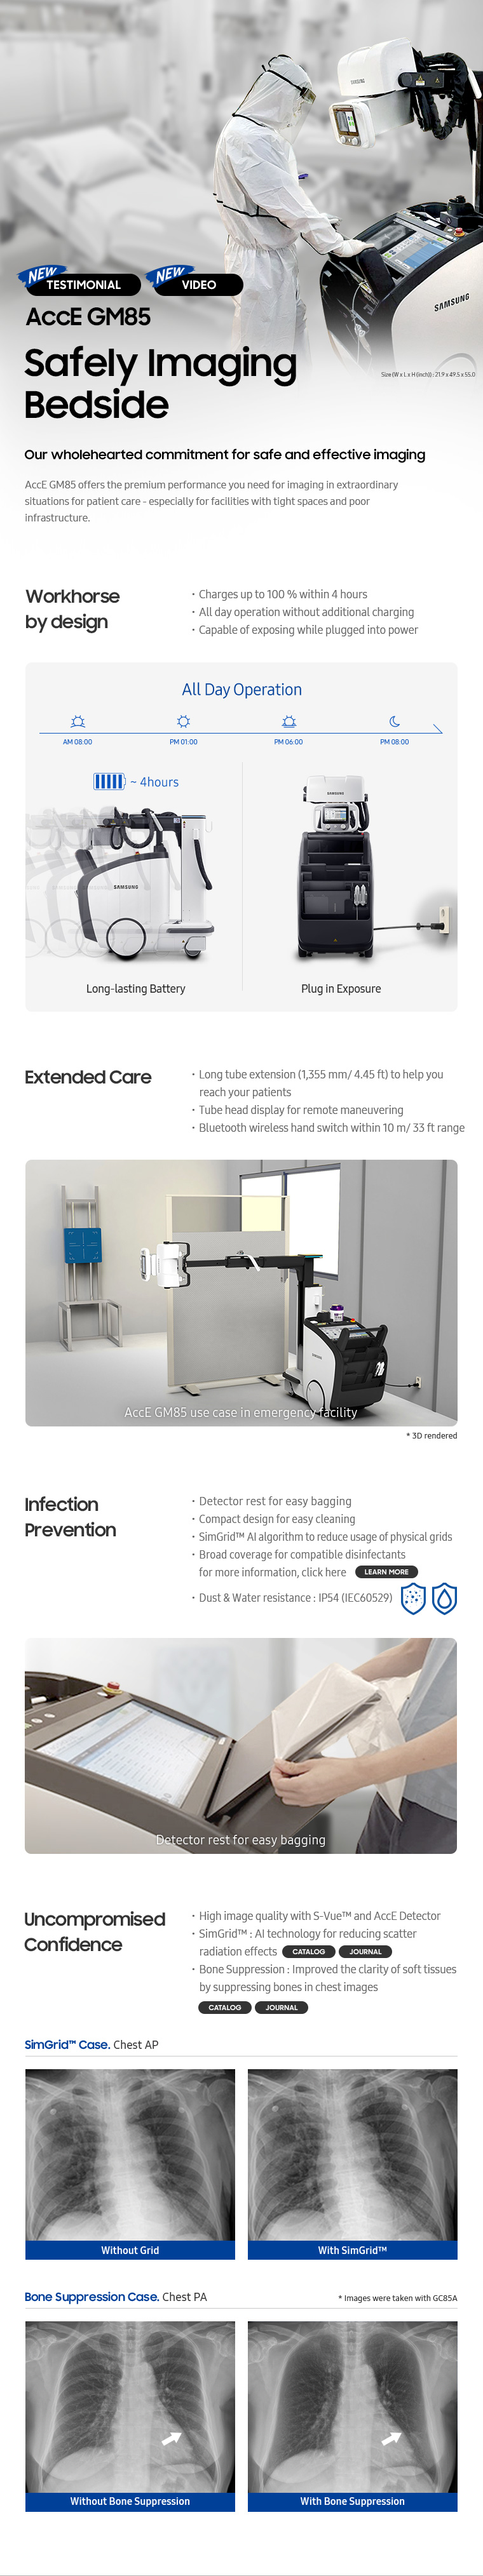 AccE GM85, Safely Imaging Bedside, Workhorse by design, Extended Care, Infection Prevention, Uncompromised Confidence